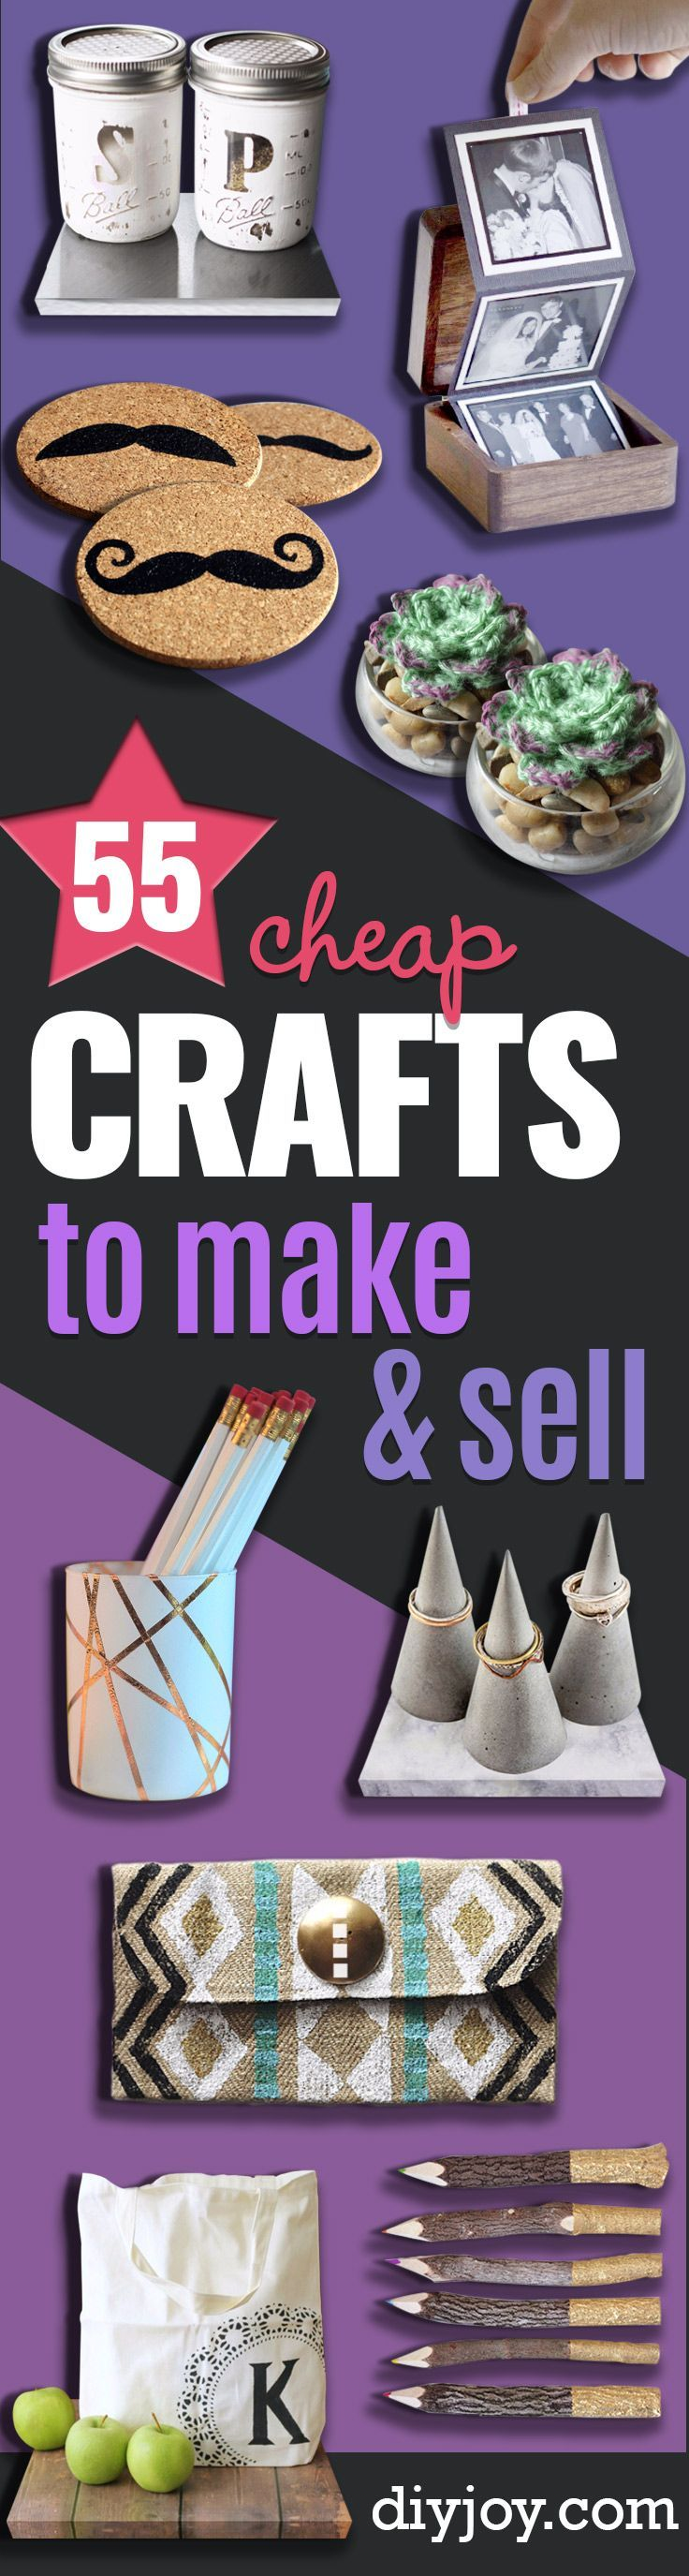 55 Cheap Crafts to Make and Sell - Page 6 of 11